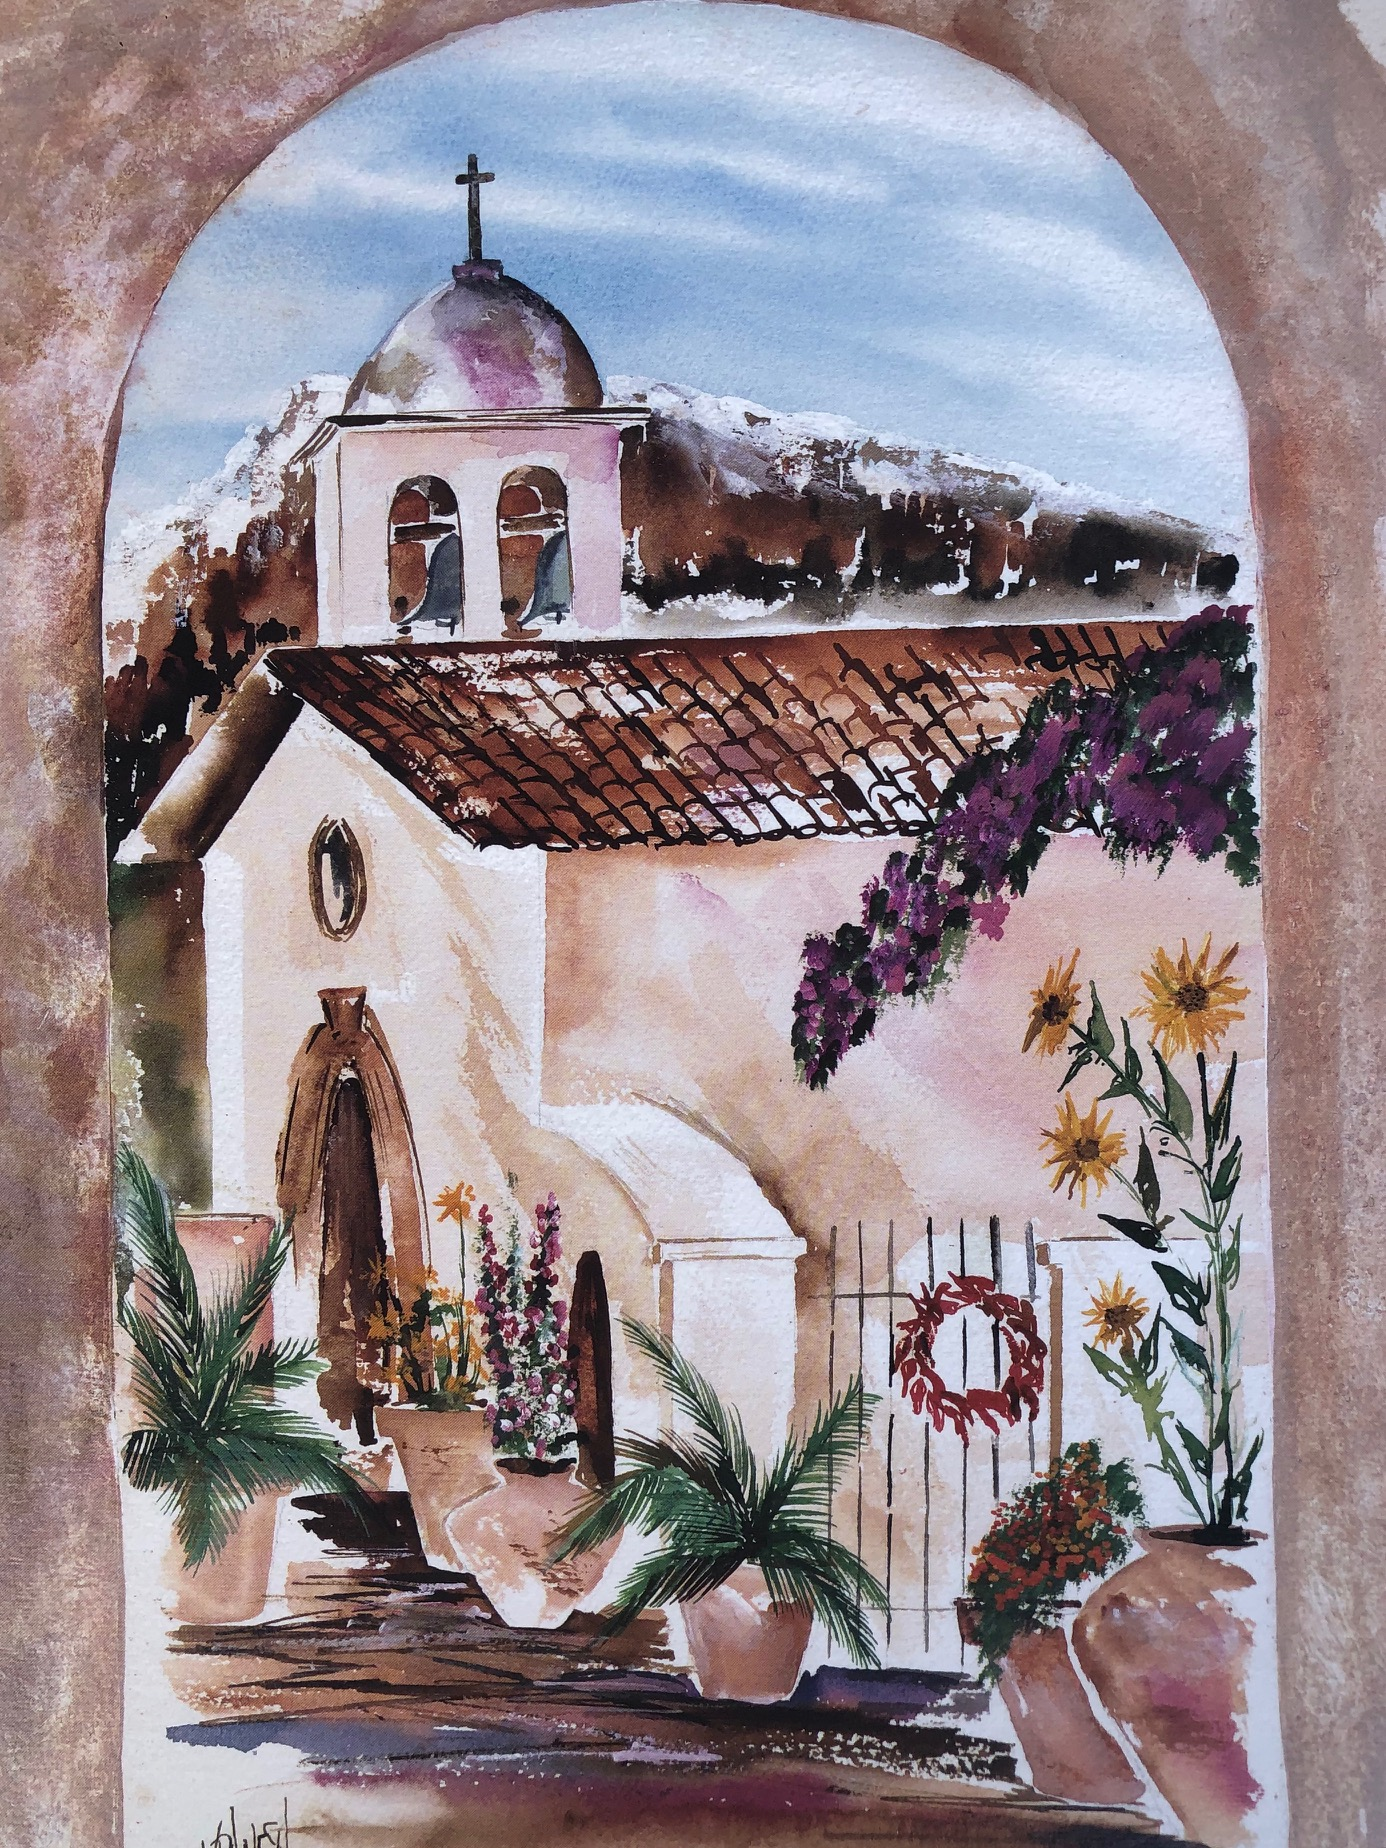 Tlaquepaque Village chapel, by Mark Vranesh